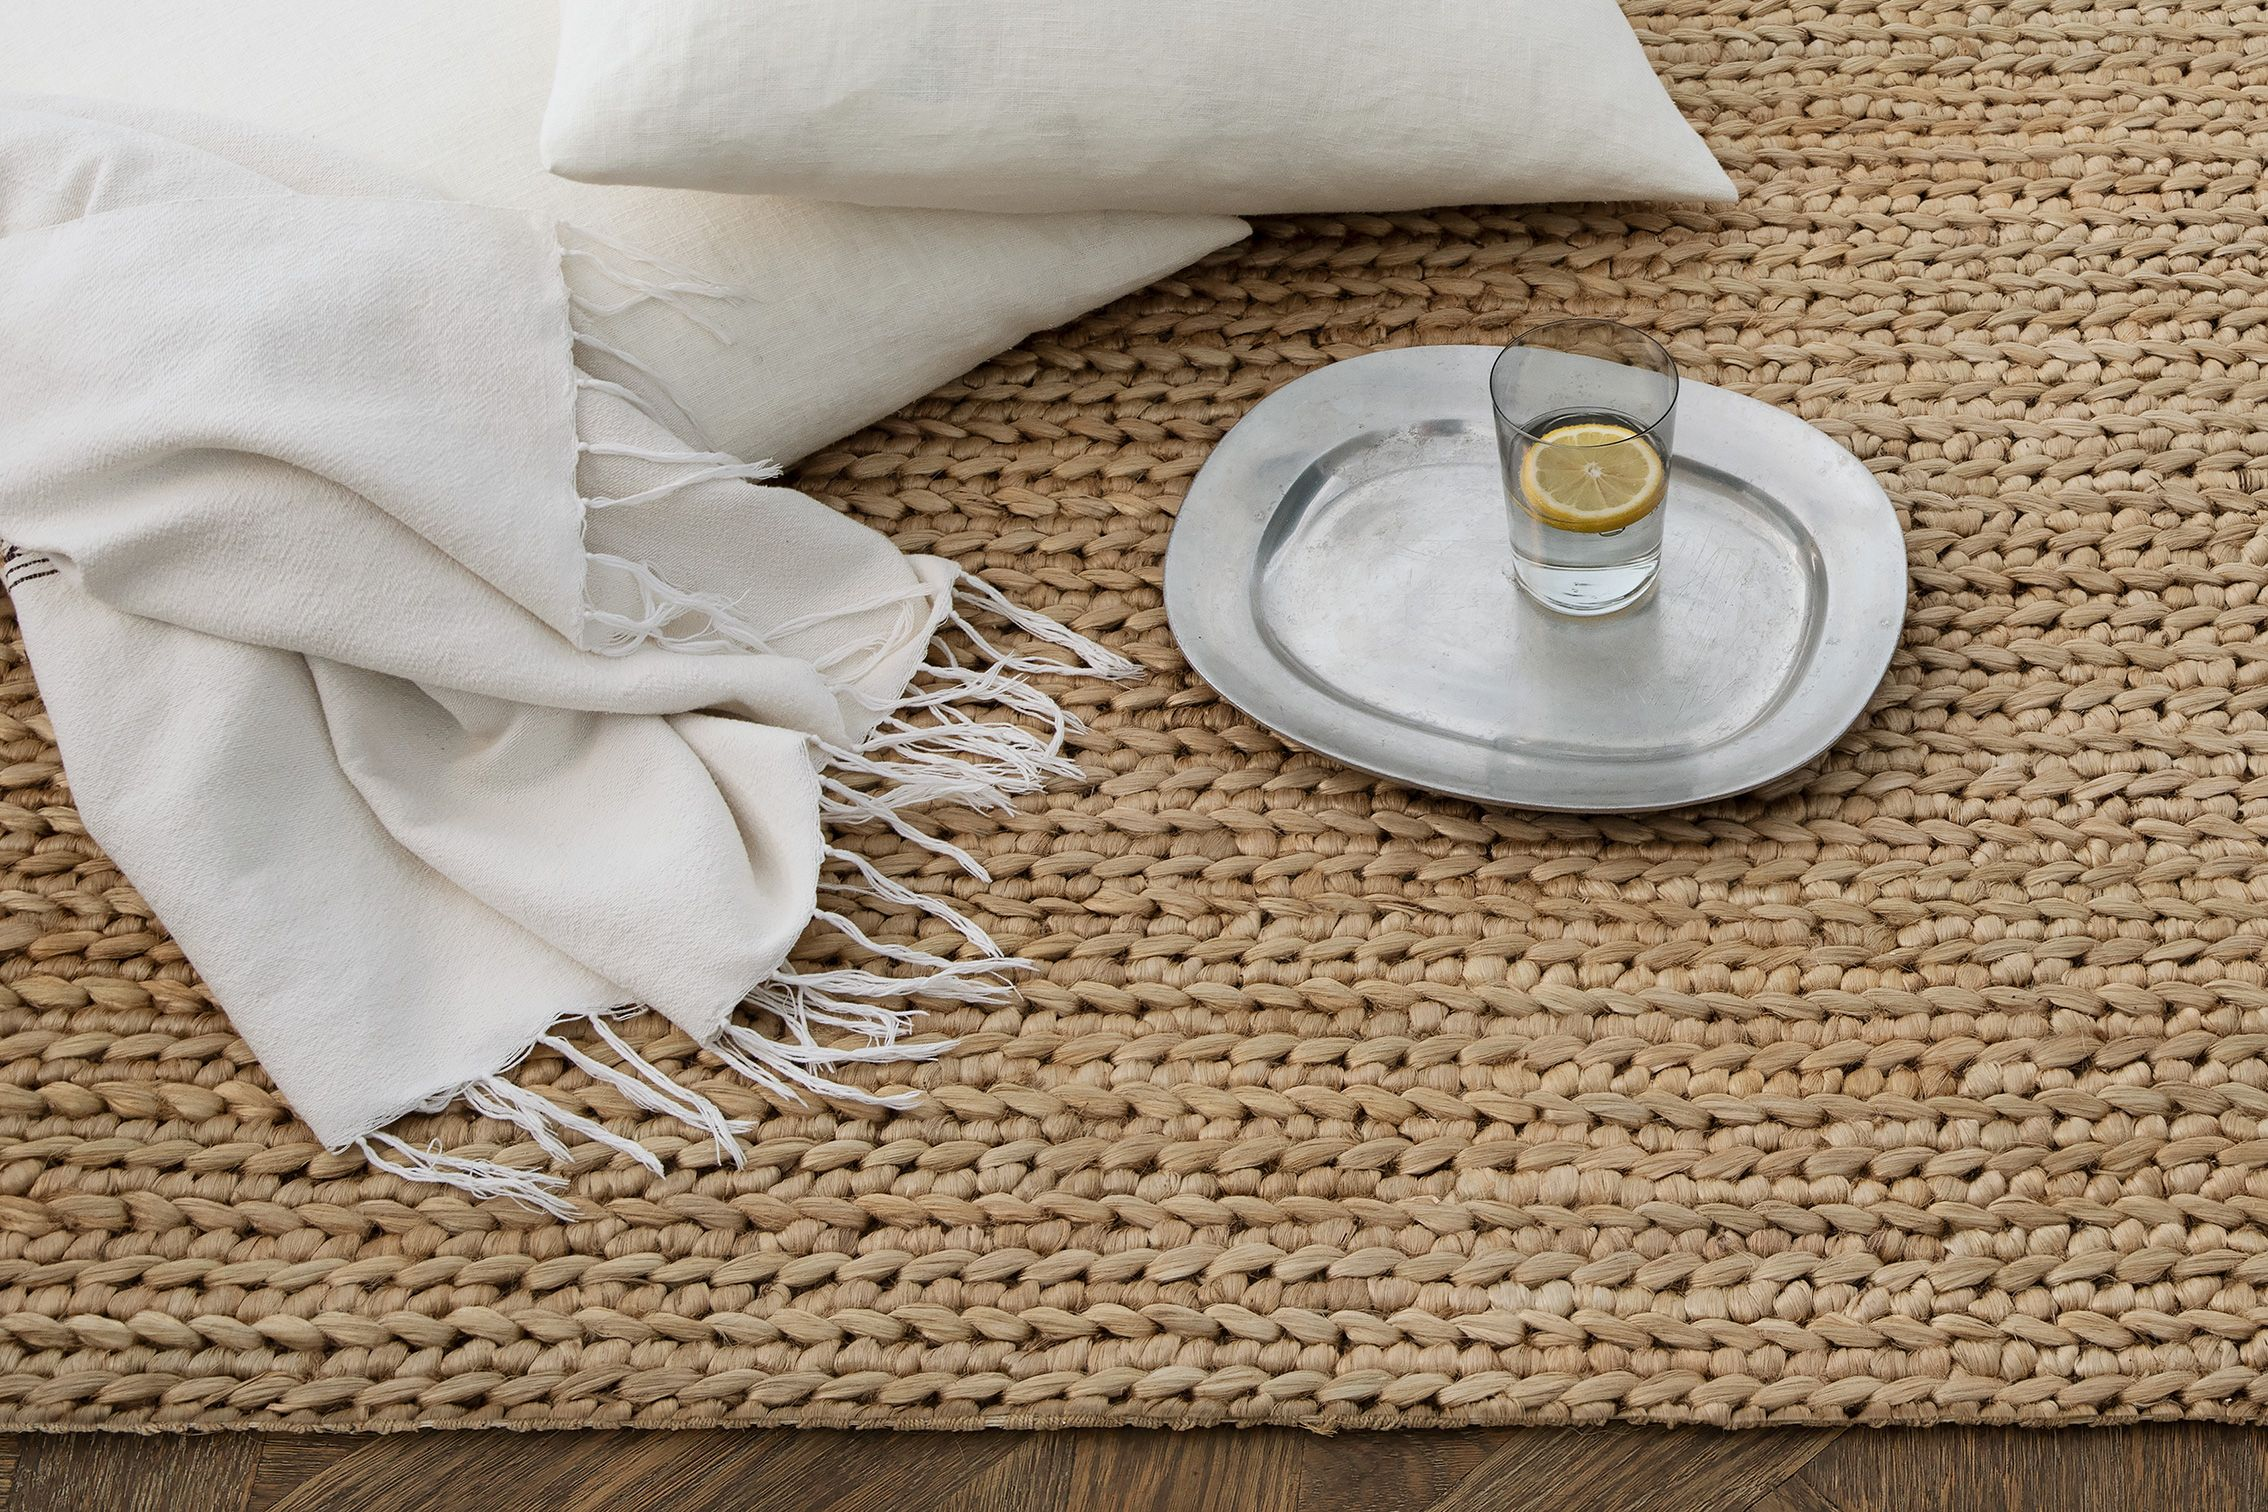 Chunky hand-braided jute rug in linen, from $445.